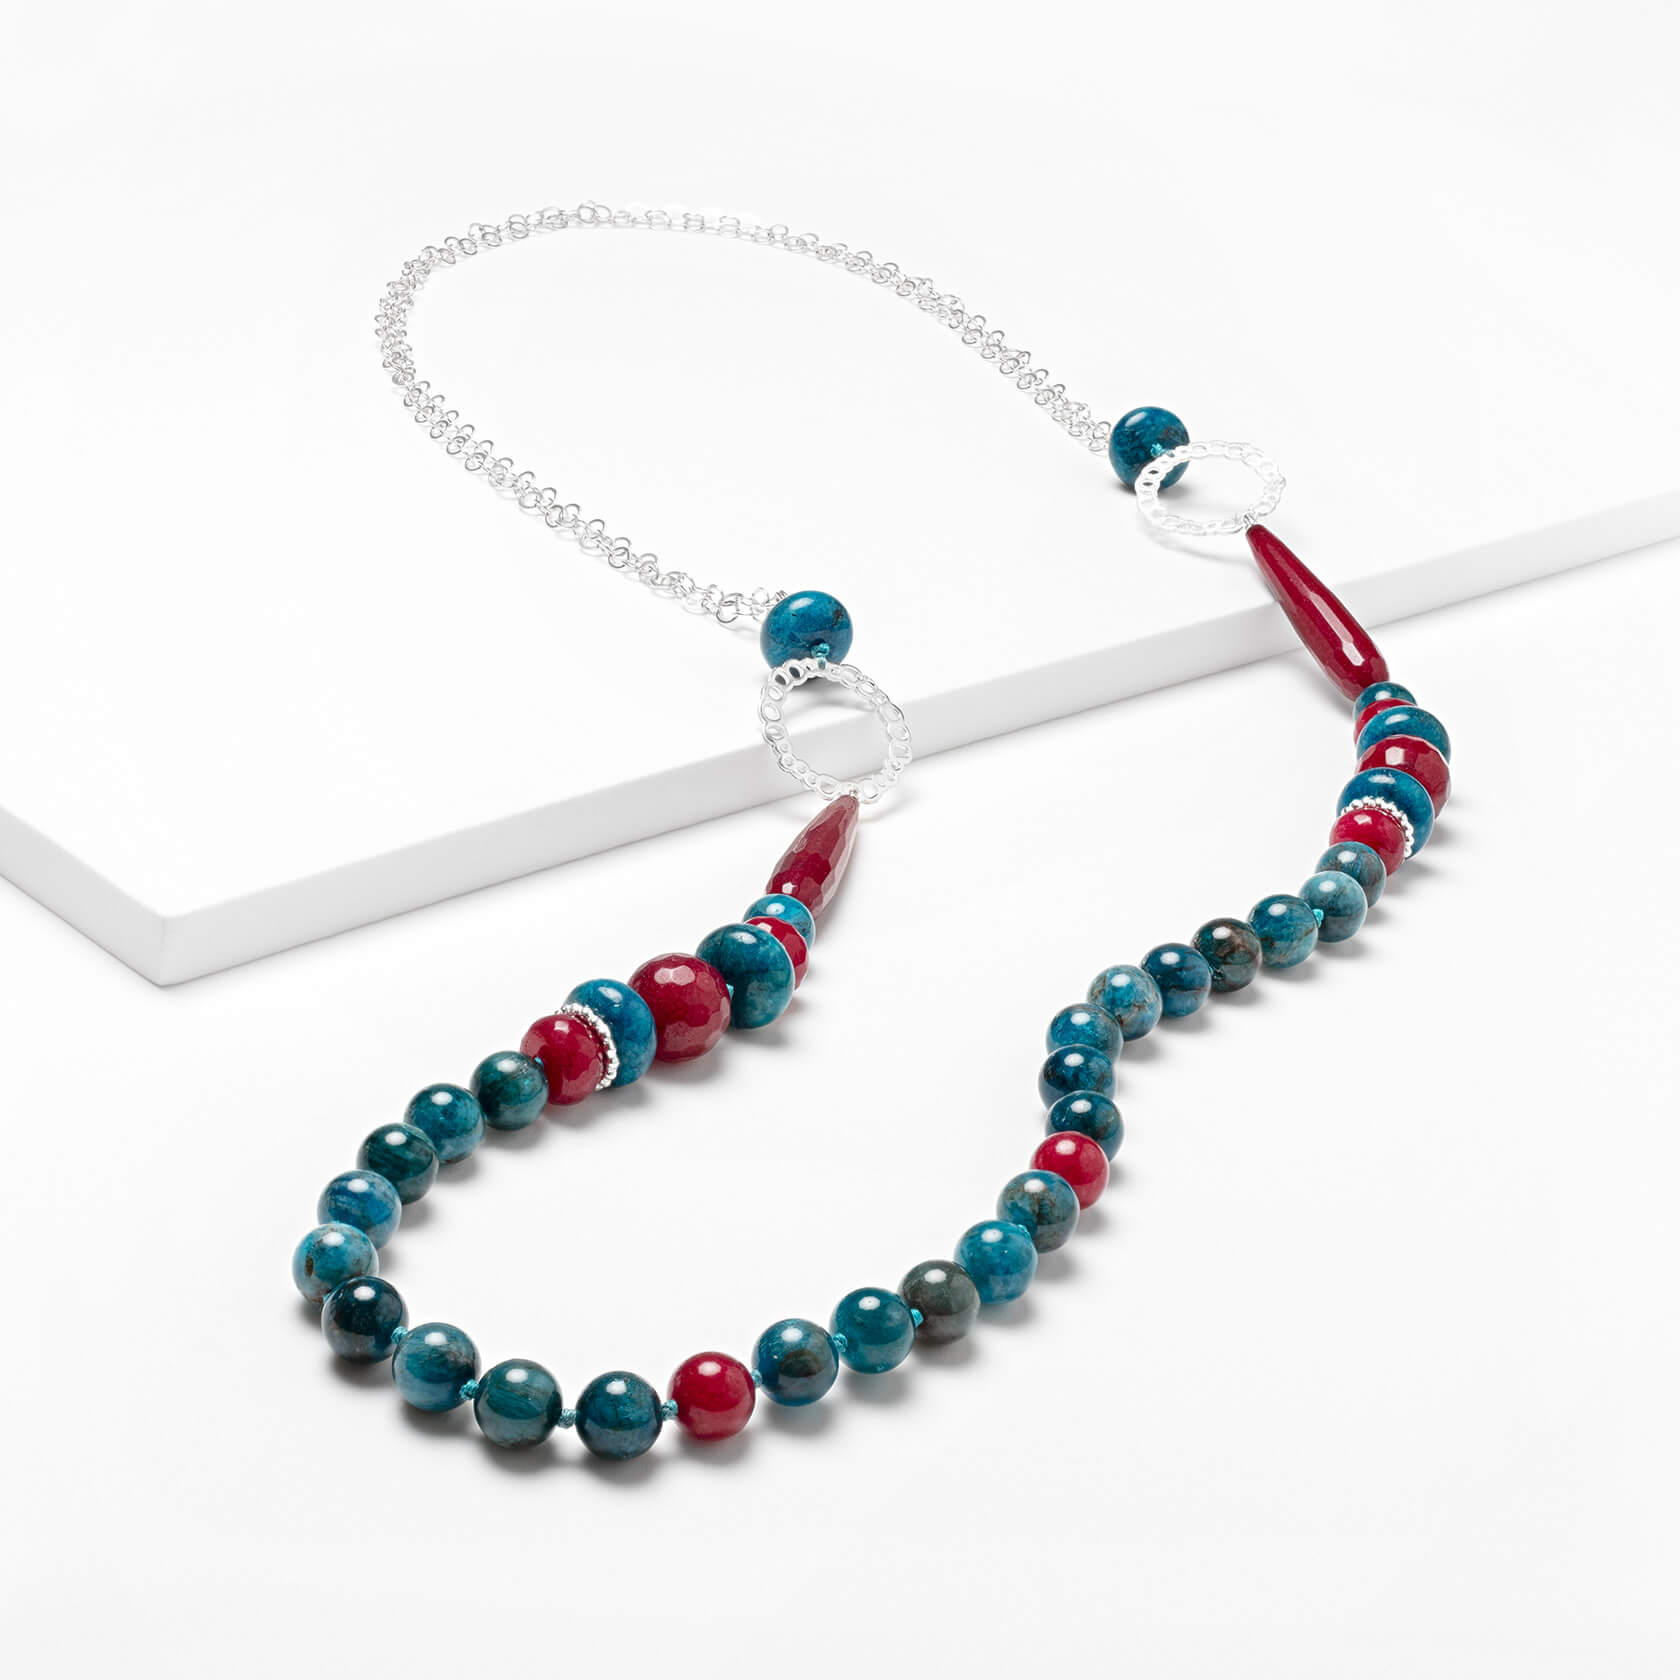 Agate and apatite long necklace